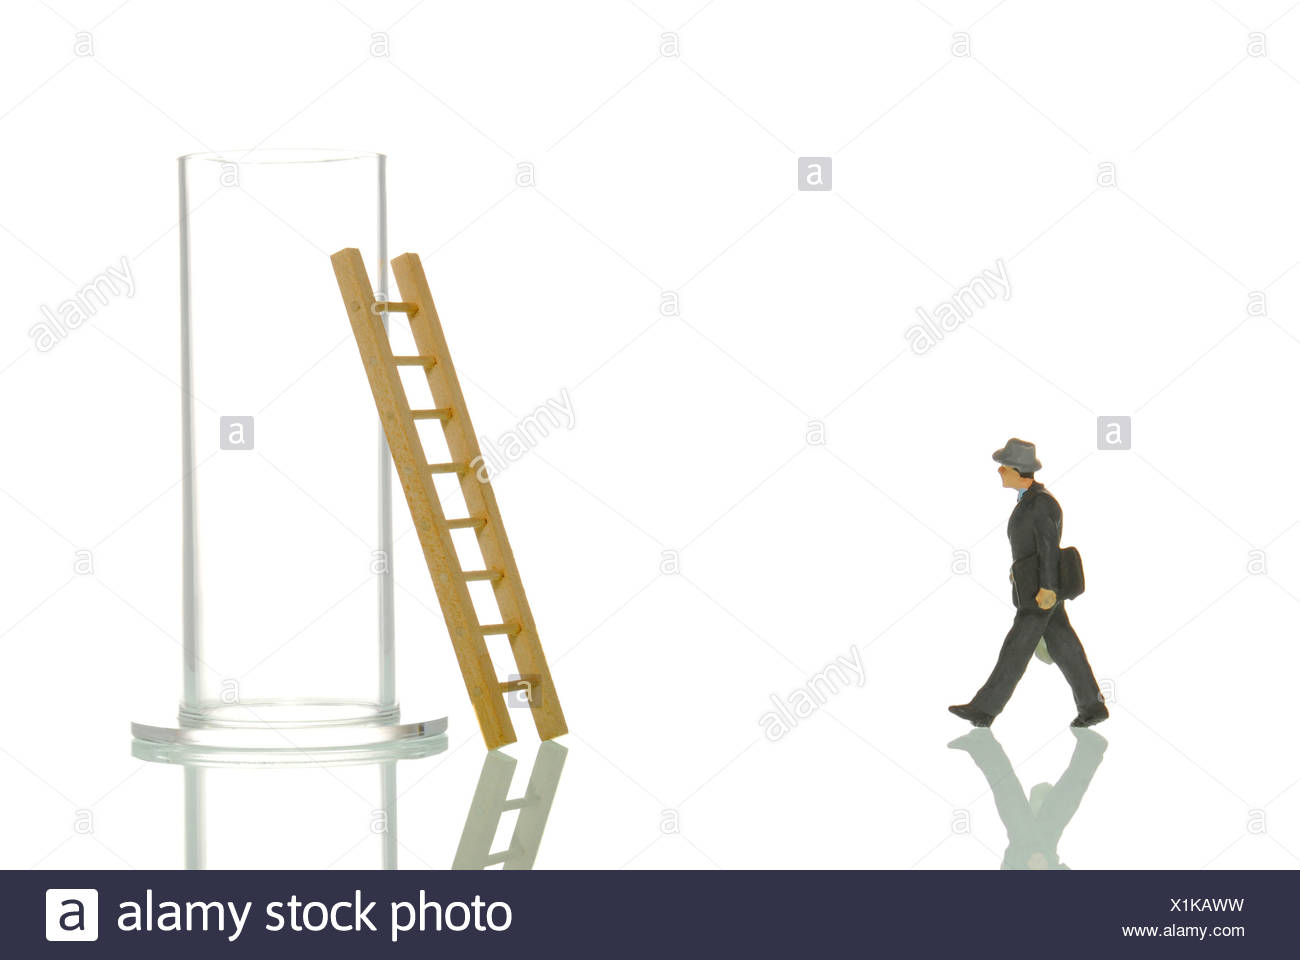 Manager figurines and glass with ladder, symbolic image for 'Back in the everyday' - Stock Image